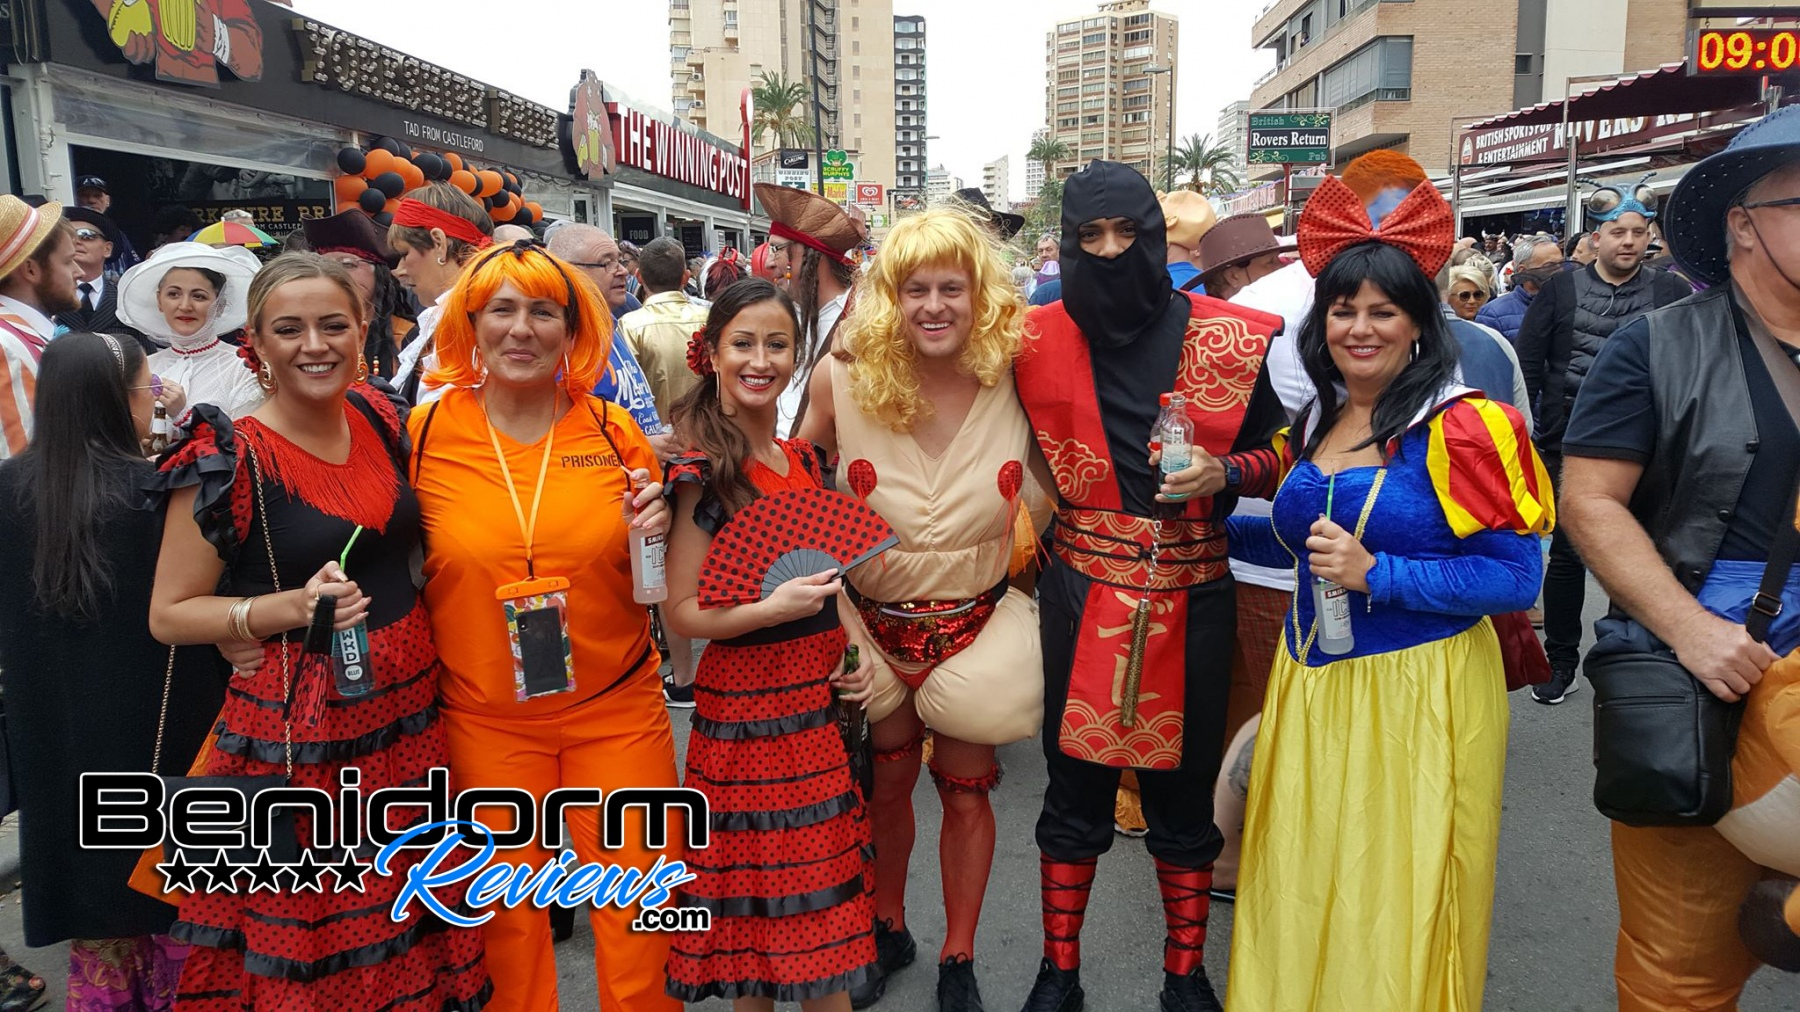 Benidorm-Fiestas-2019-Fancy-Dress-242